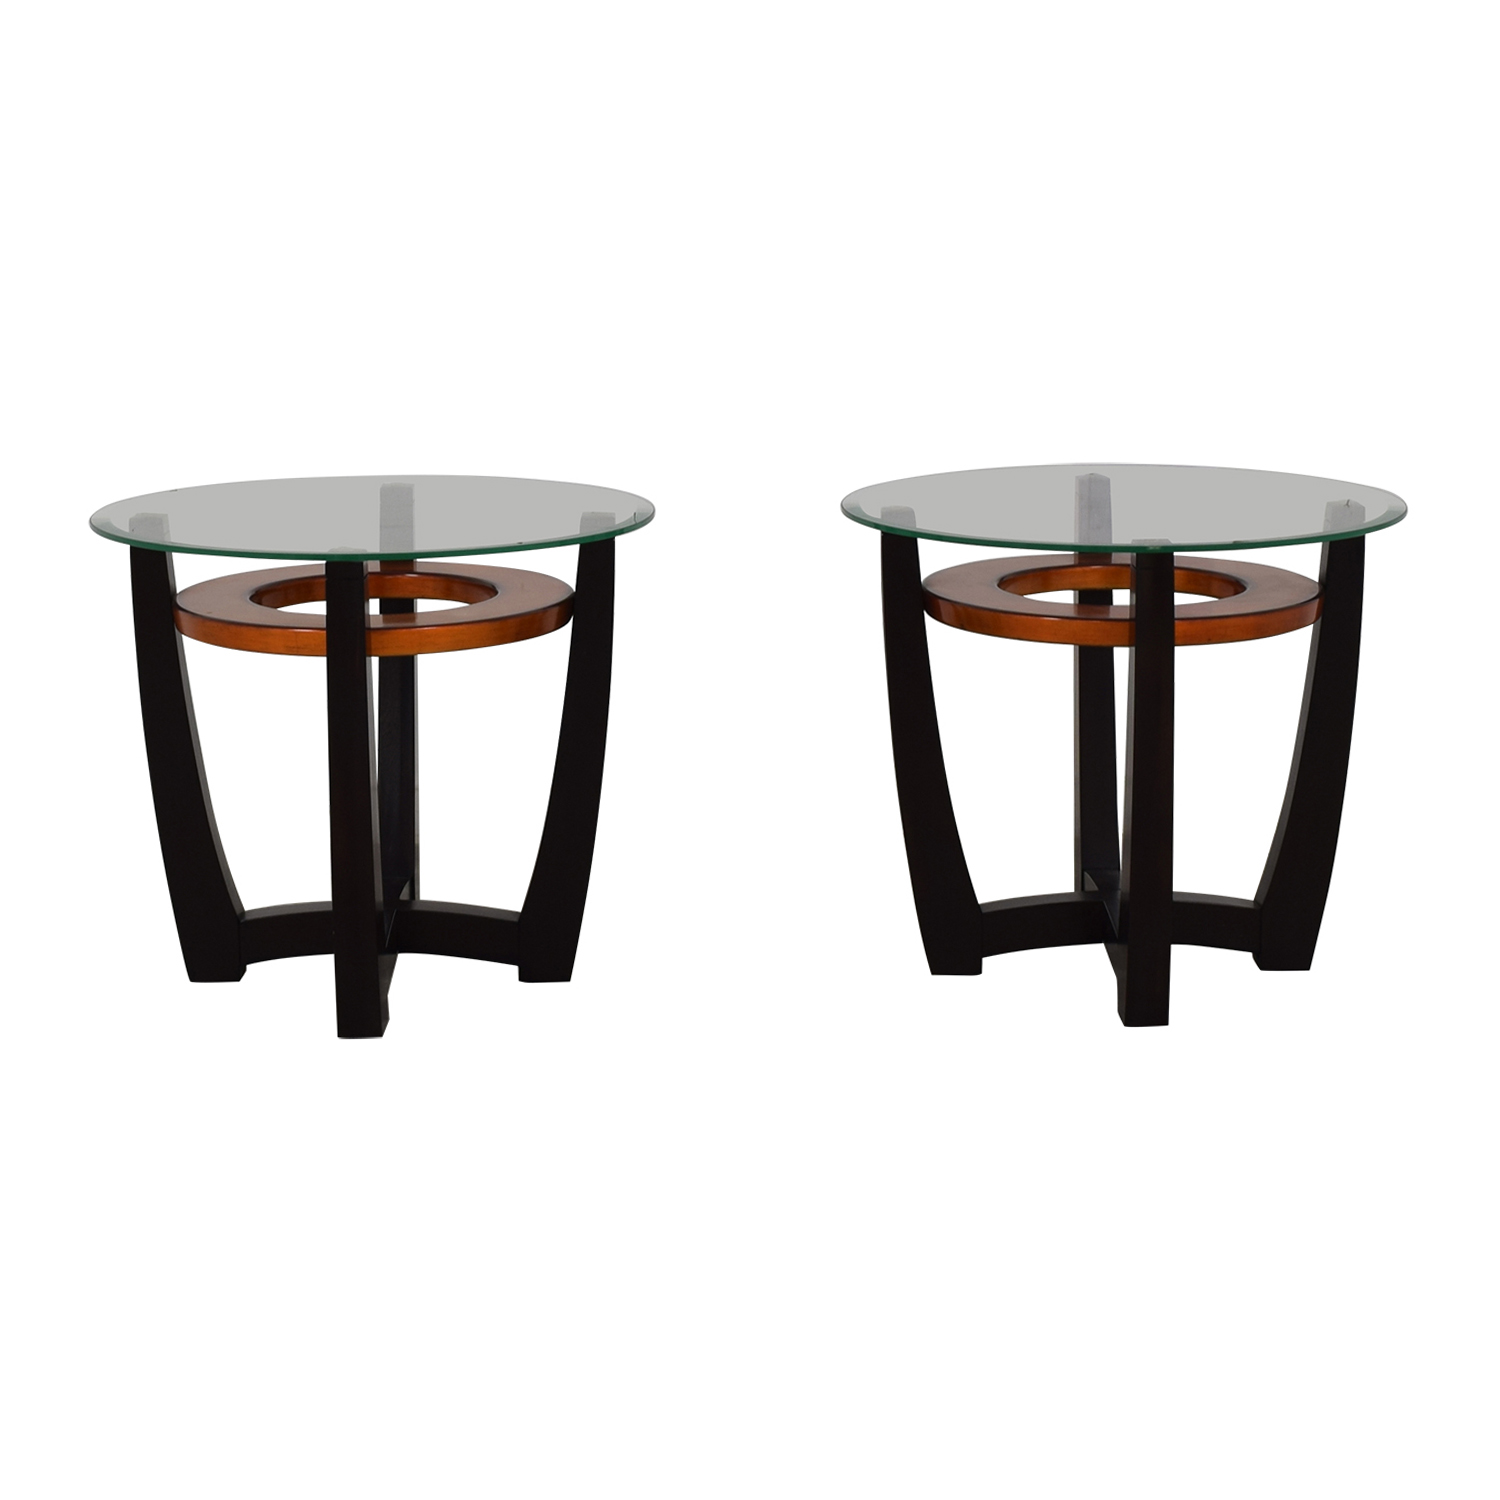 90 Off Round Glass And Bi Colored Wood Coffee Table Tables